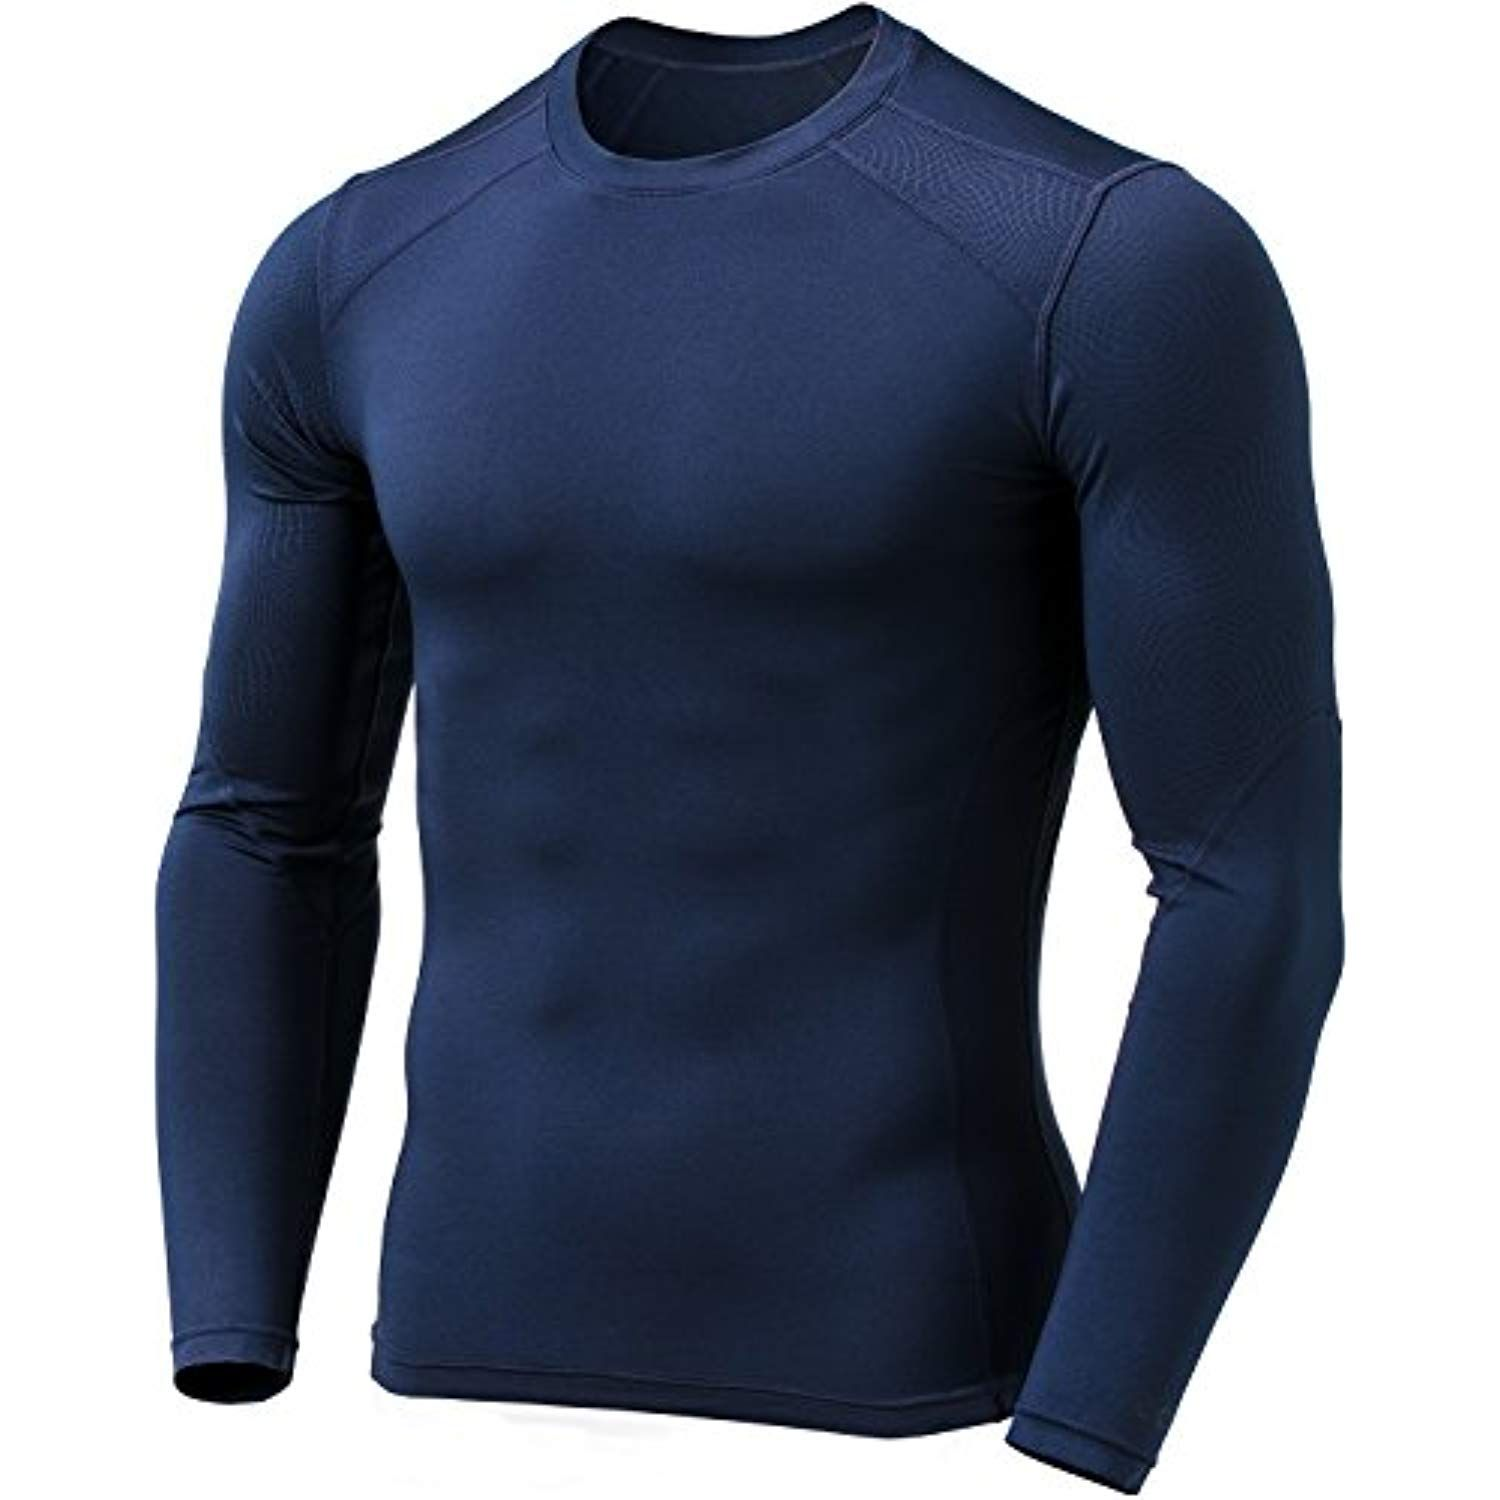 44f9c1a3693 Tesla Men s Thermal Wintergear Compression Baselayer Long Sleeve Top YUD21    YUD41   YUD34   R34   R44  RX1    Click image for more details.